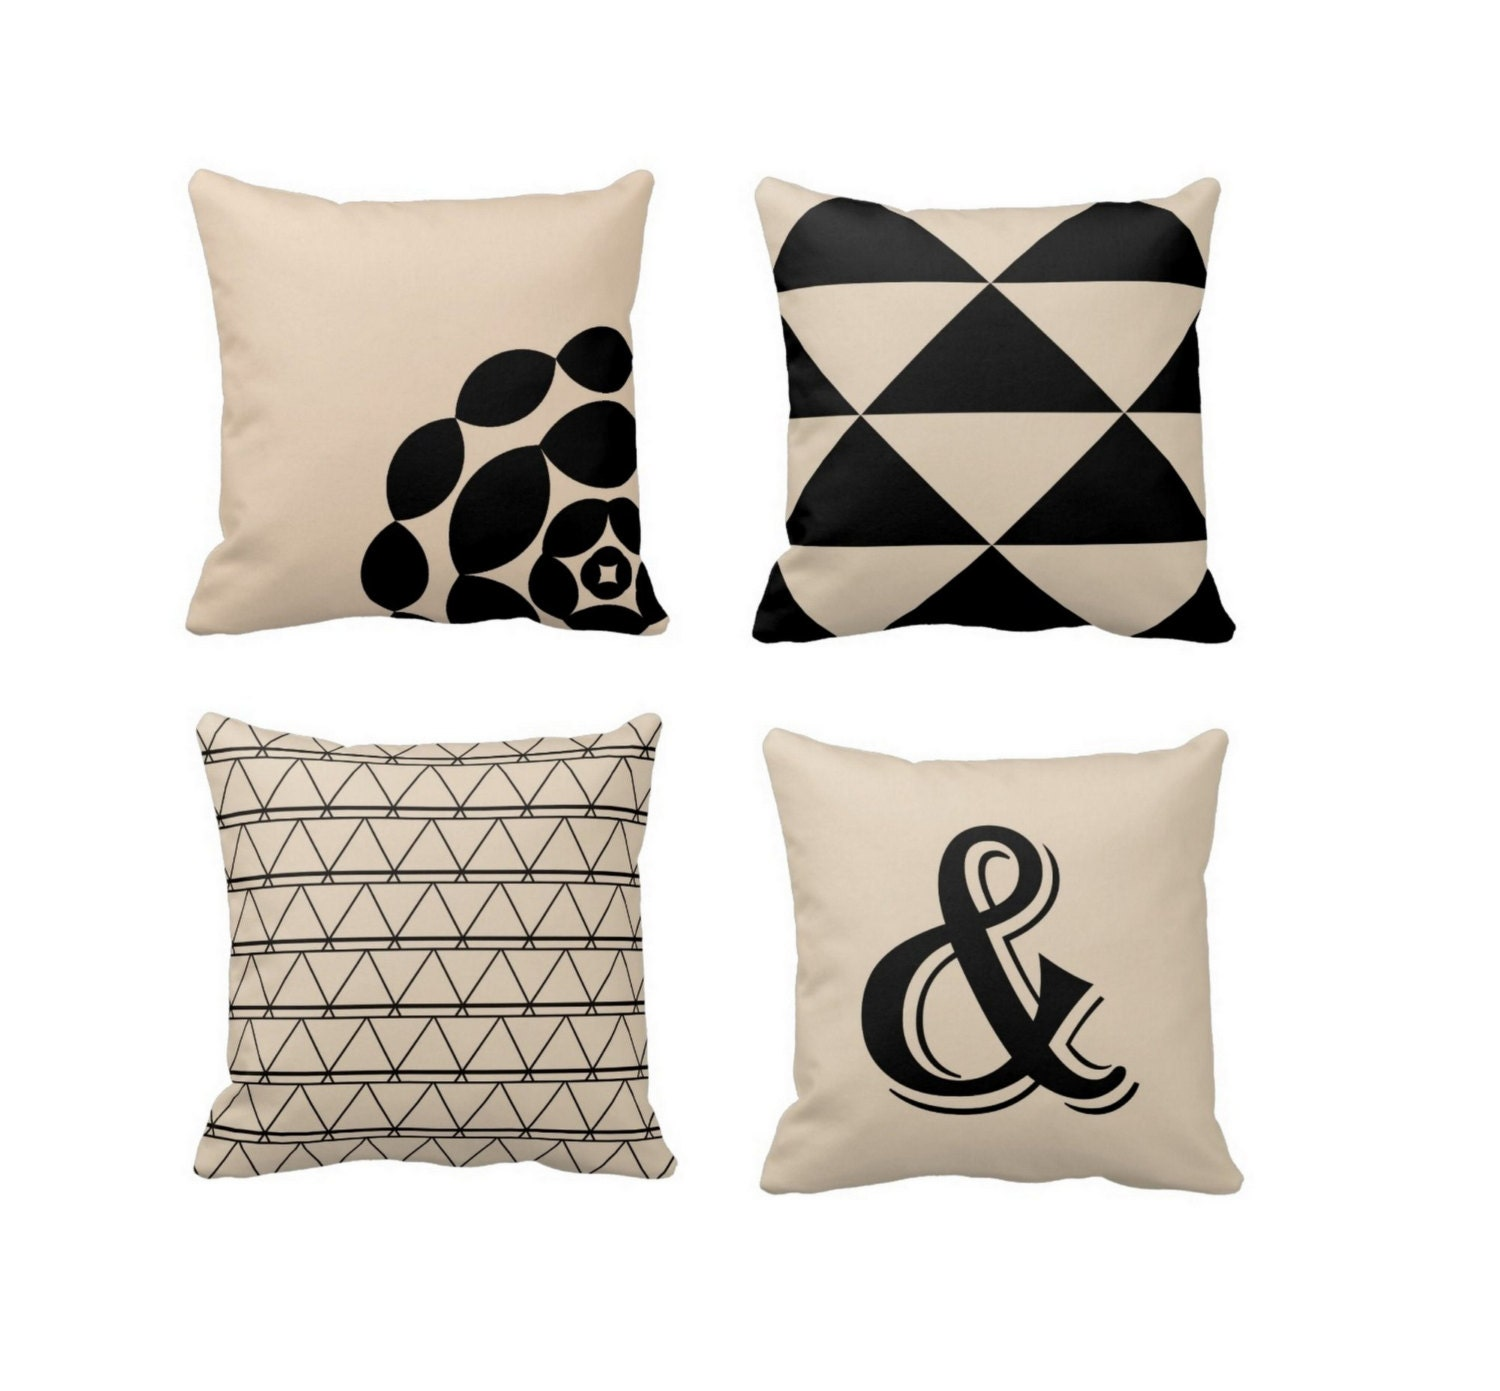 Throw Pillow Covers Black Beige Pillows Neutral by HLBhomedesigns